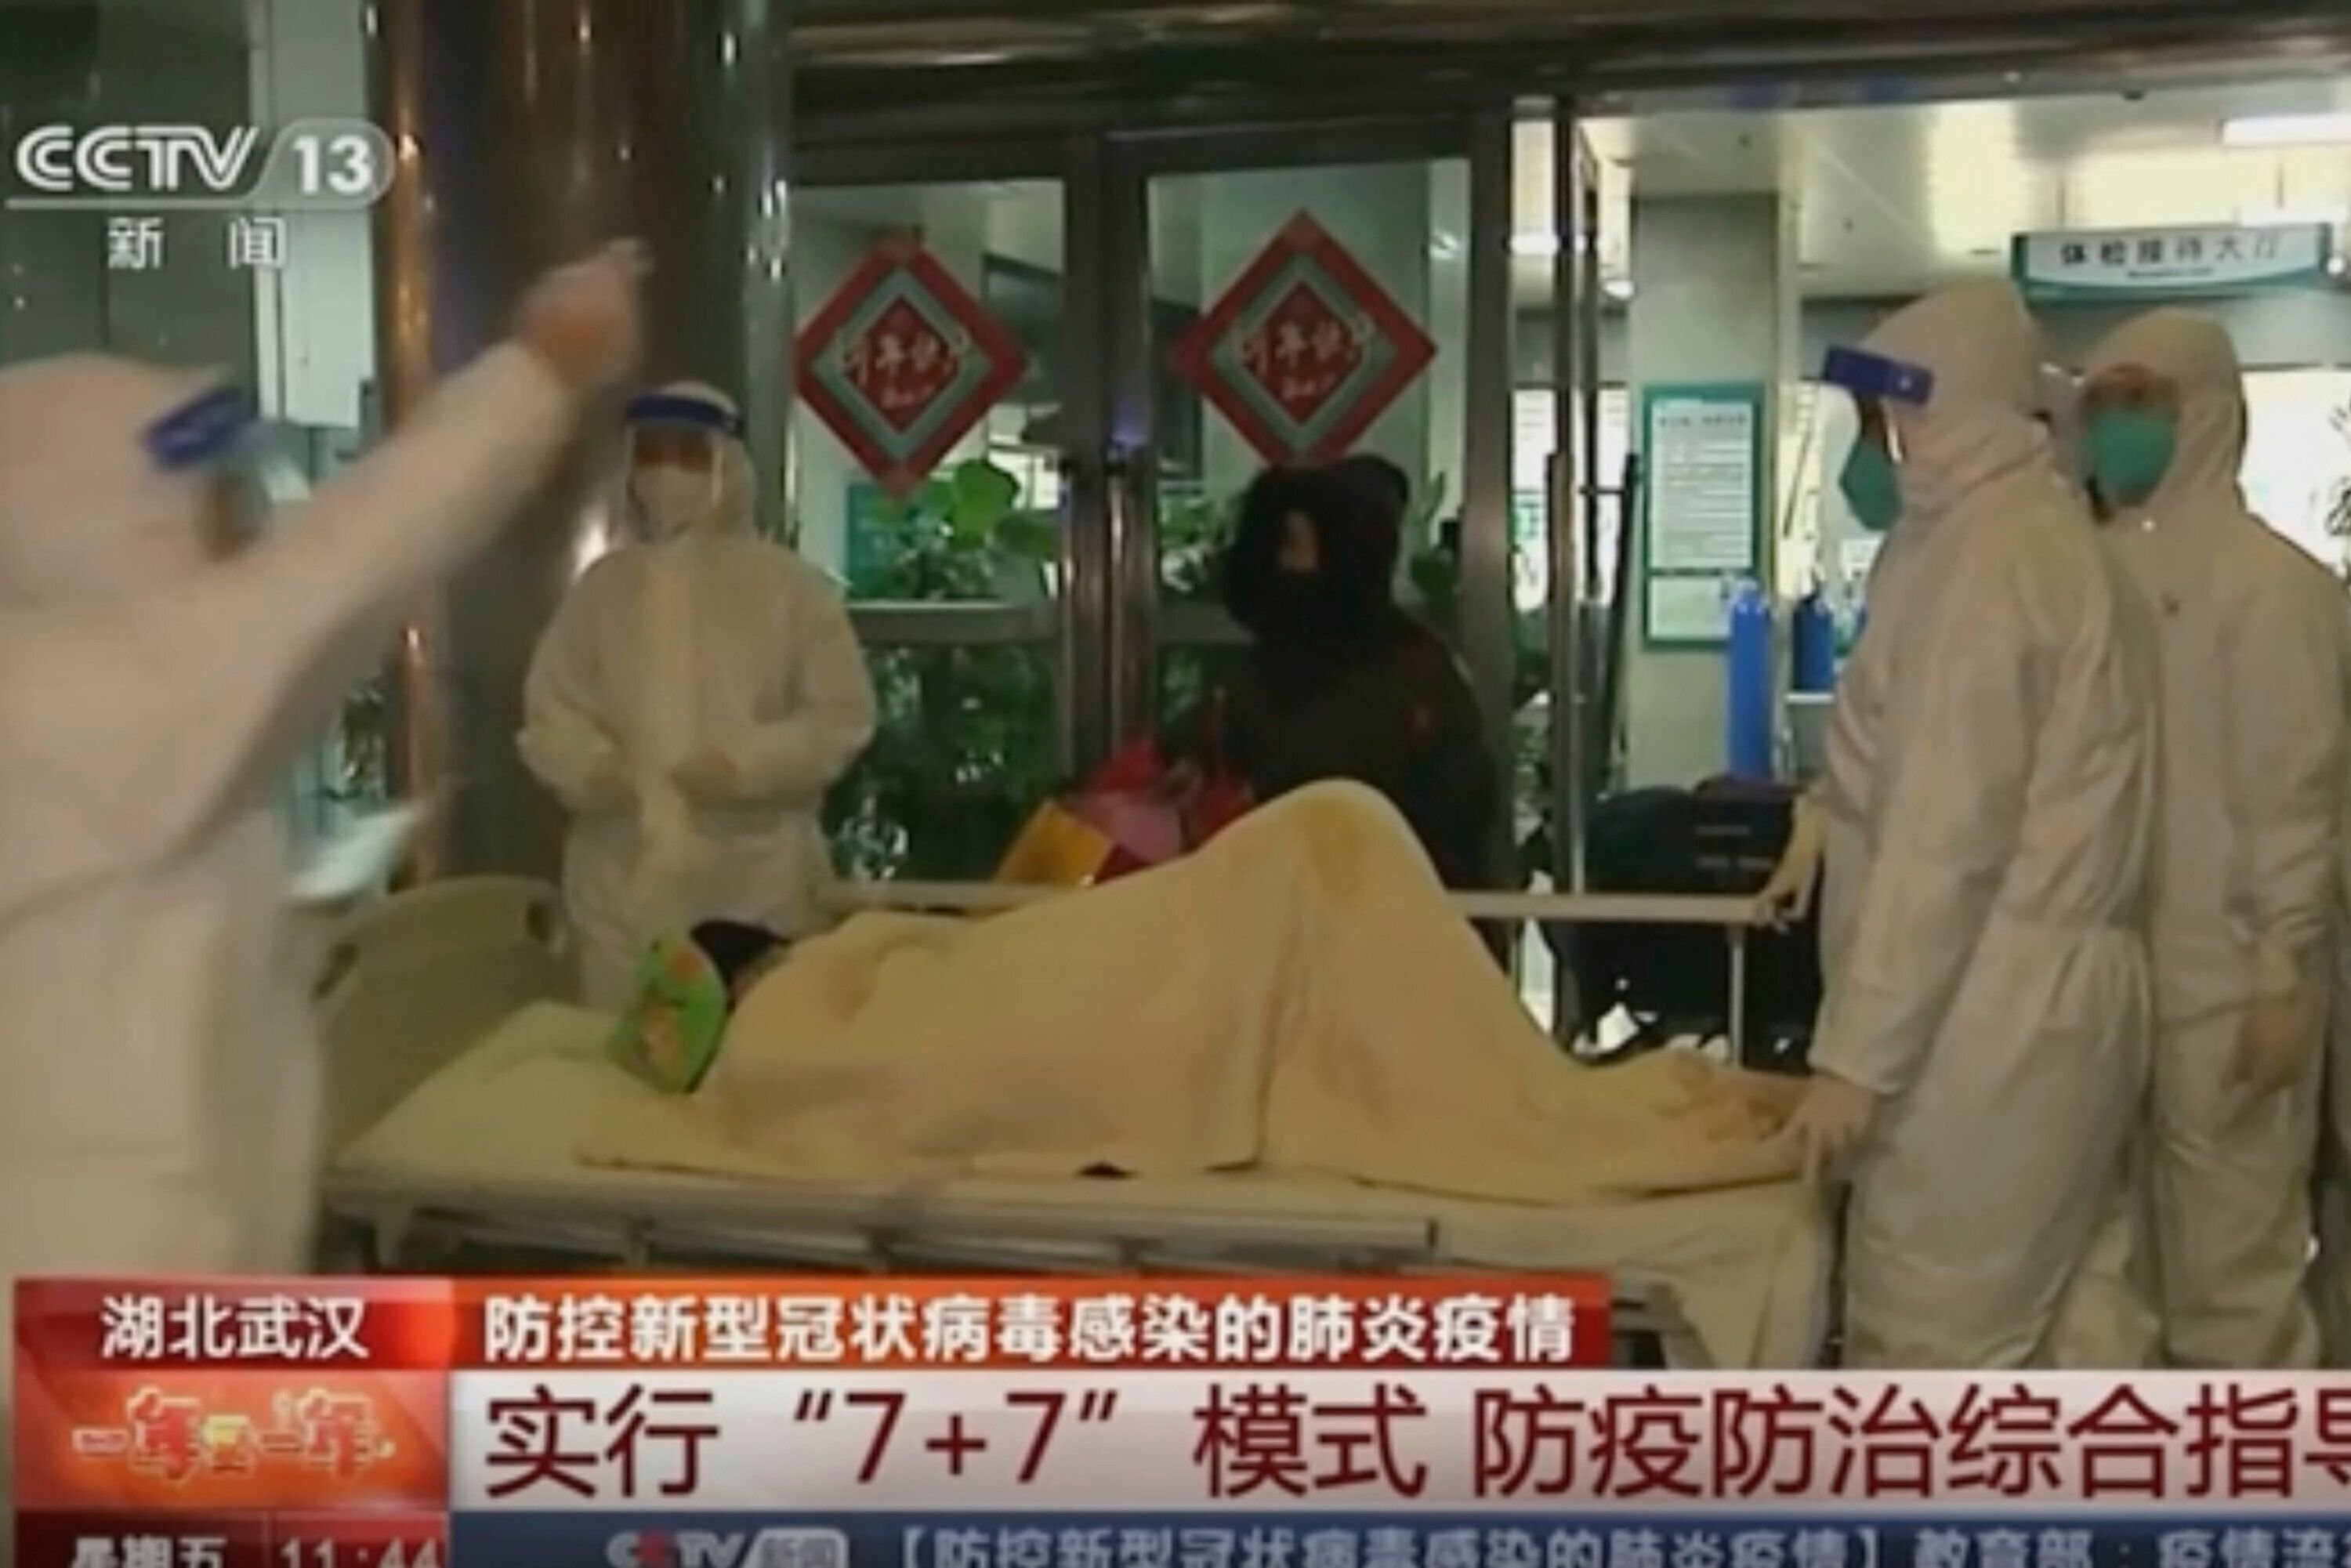 China Building A Hospital To Treat Virus, Expands Lockdowns To 10 Cities